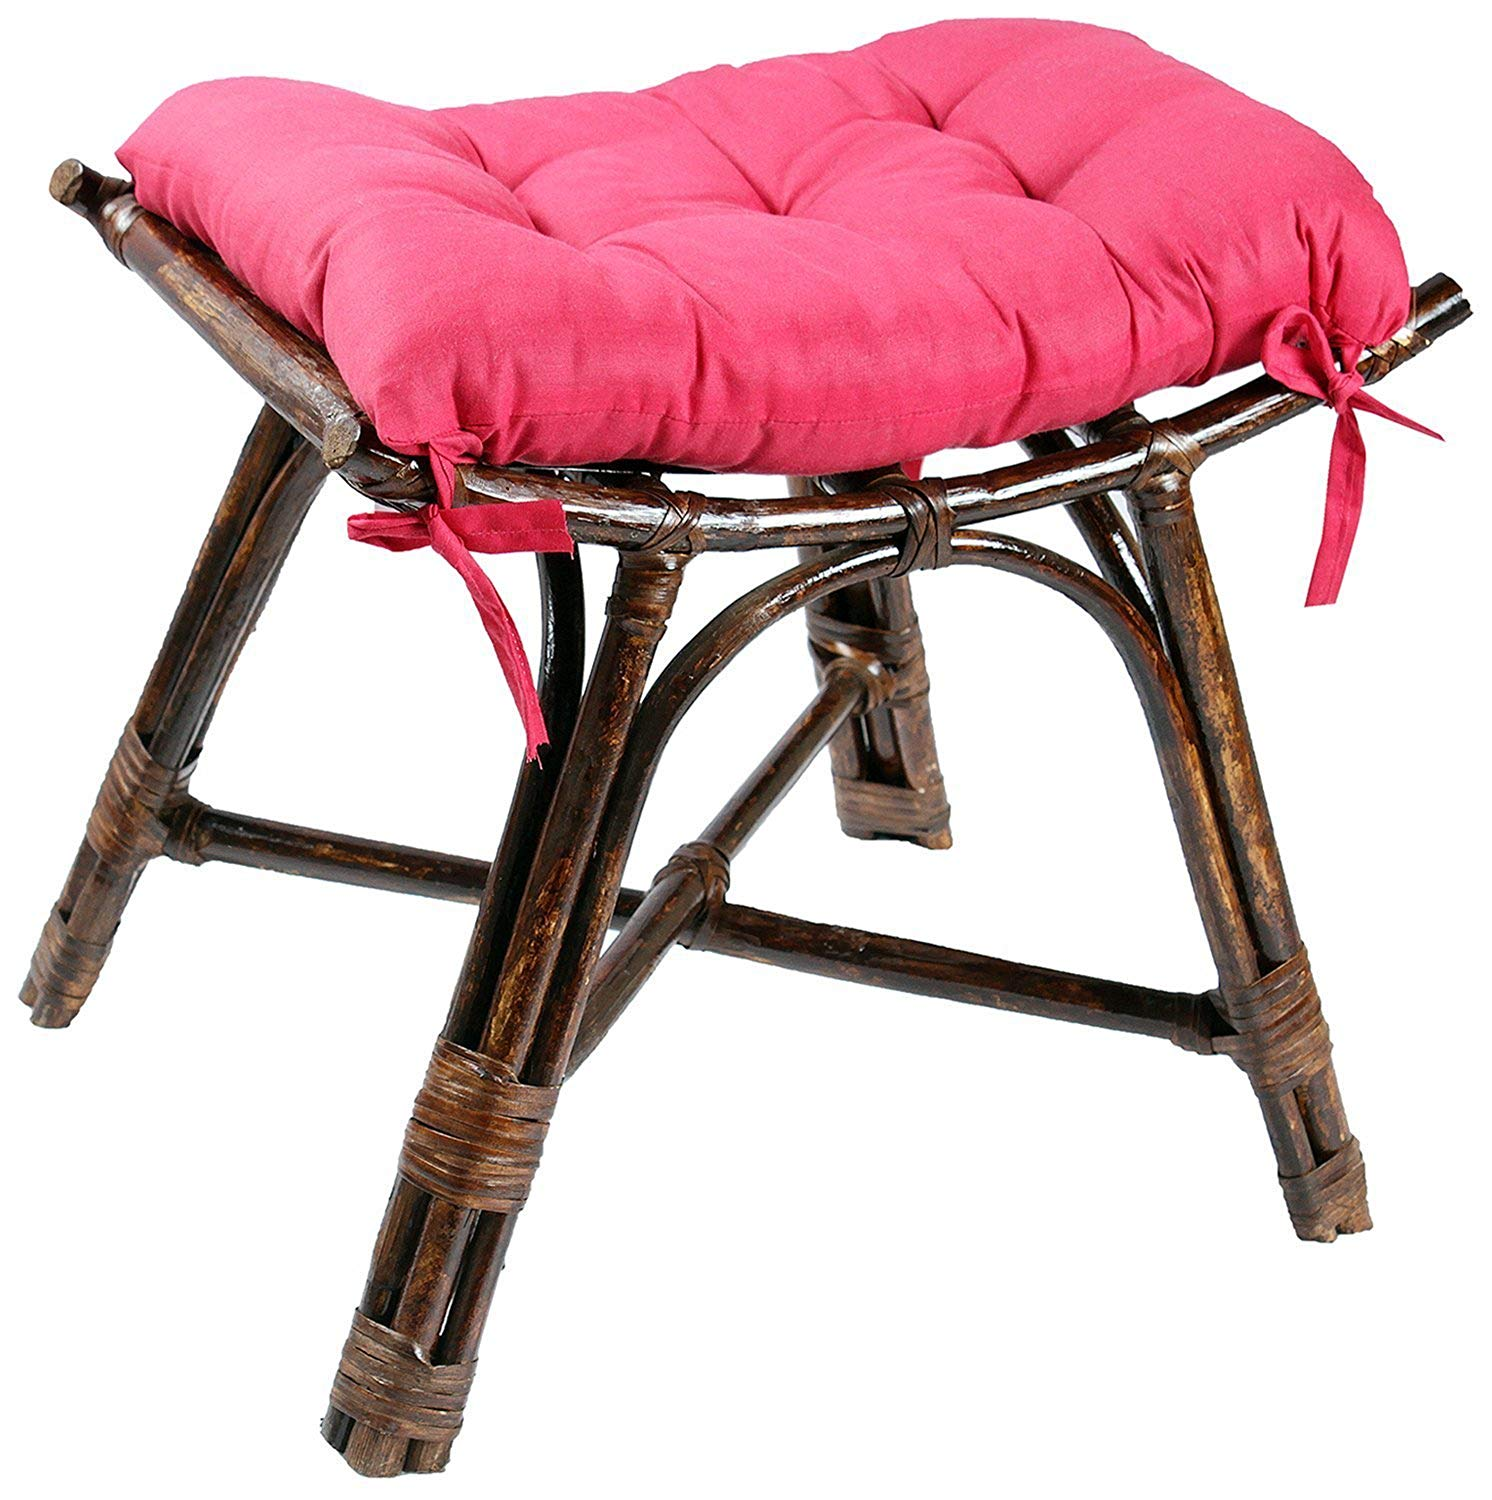 IRA Brown Footstool - IRA Furniture